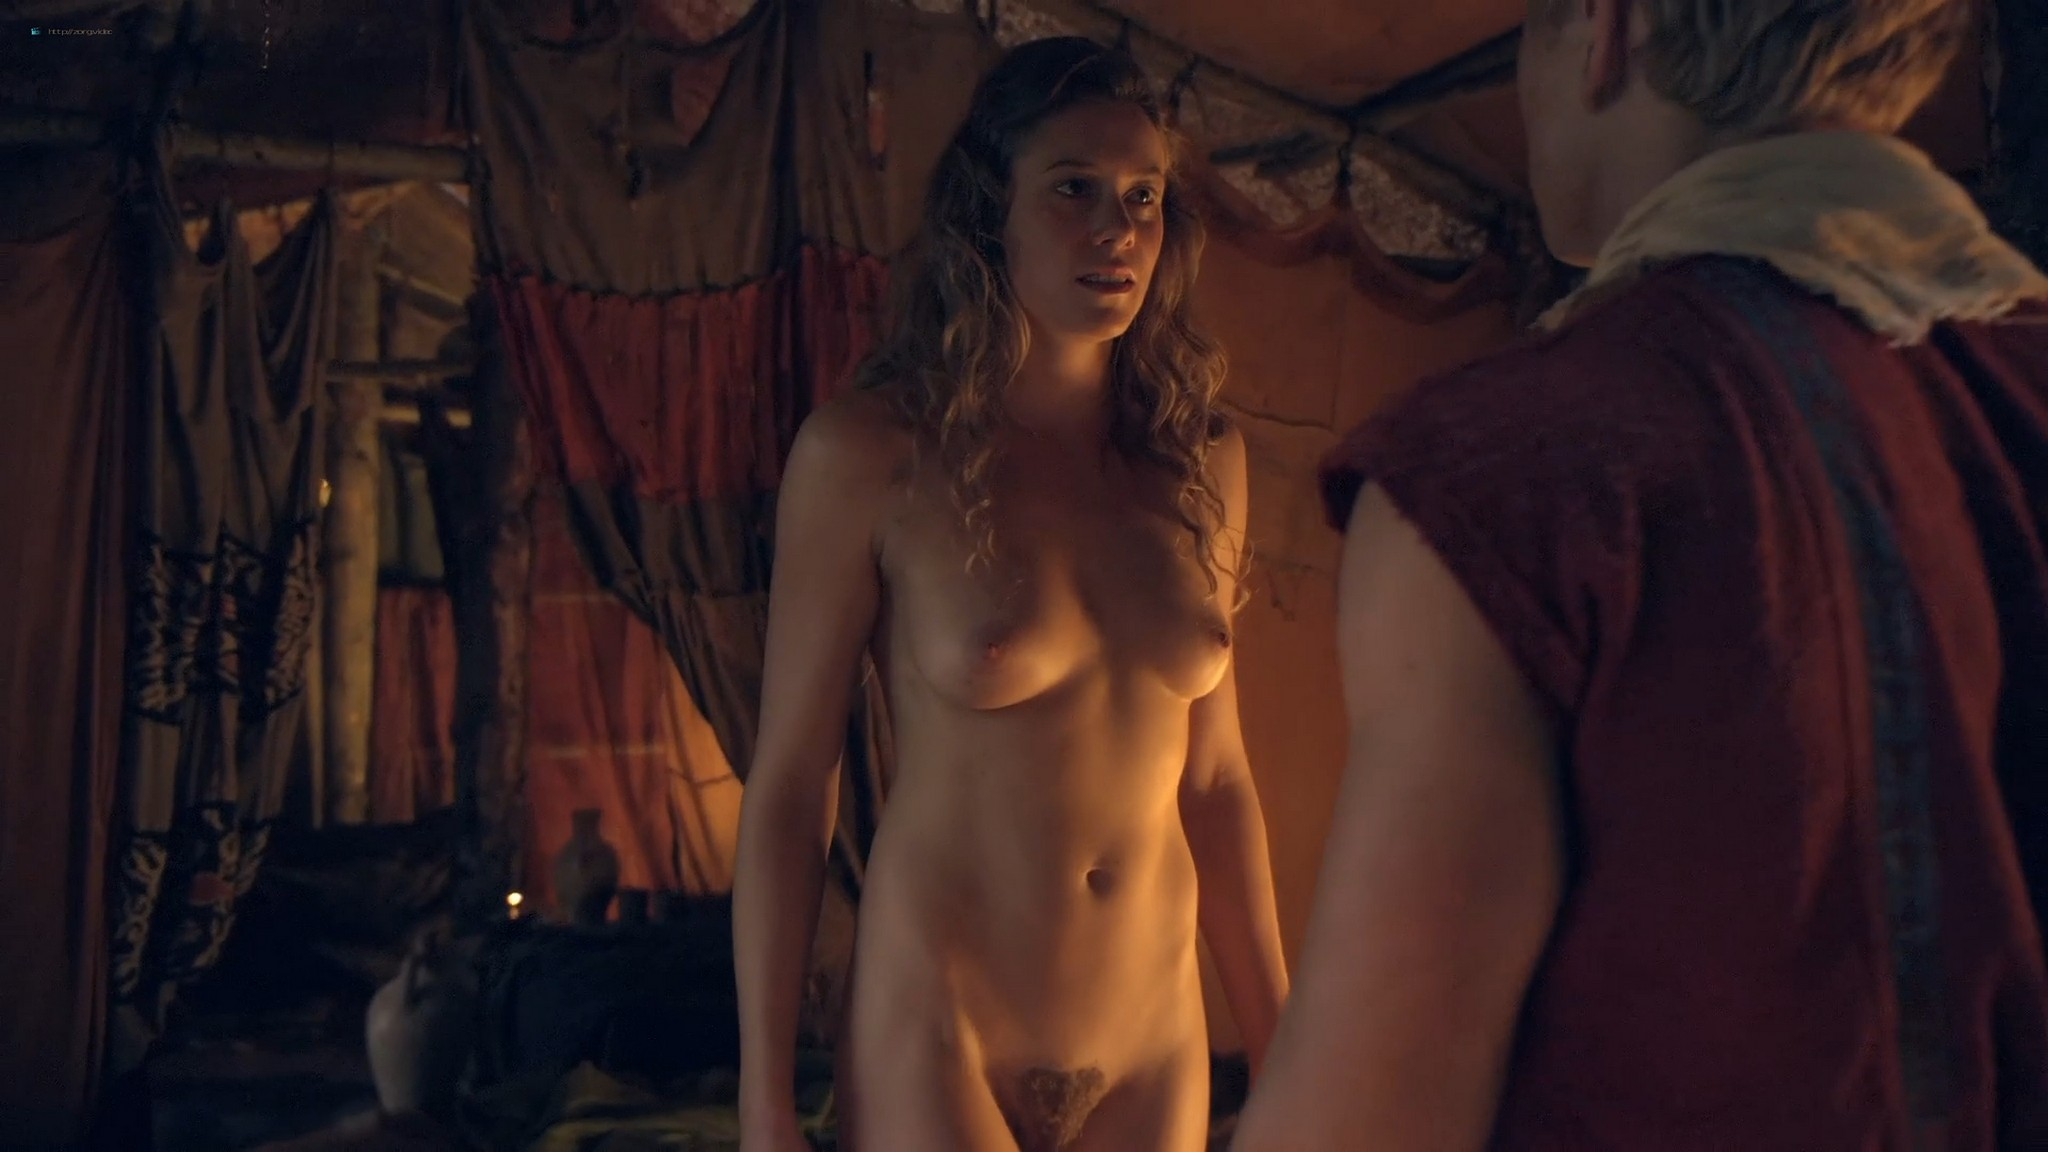 T Ann Robson nude full frontal Gwendoline Taylor nude too Spartacus 2013 s3e9 10 1080p BluRay 005